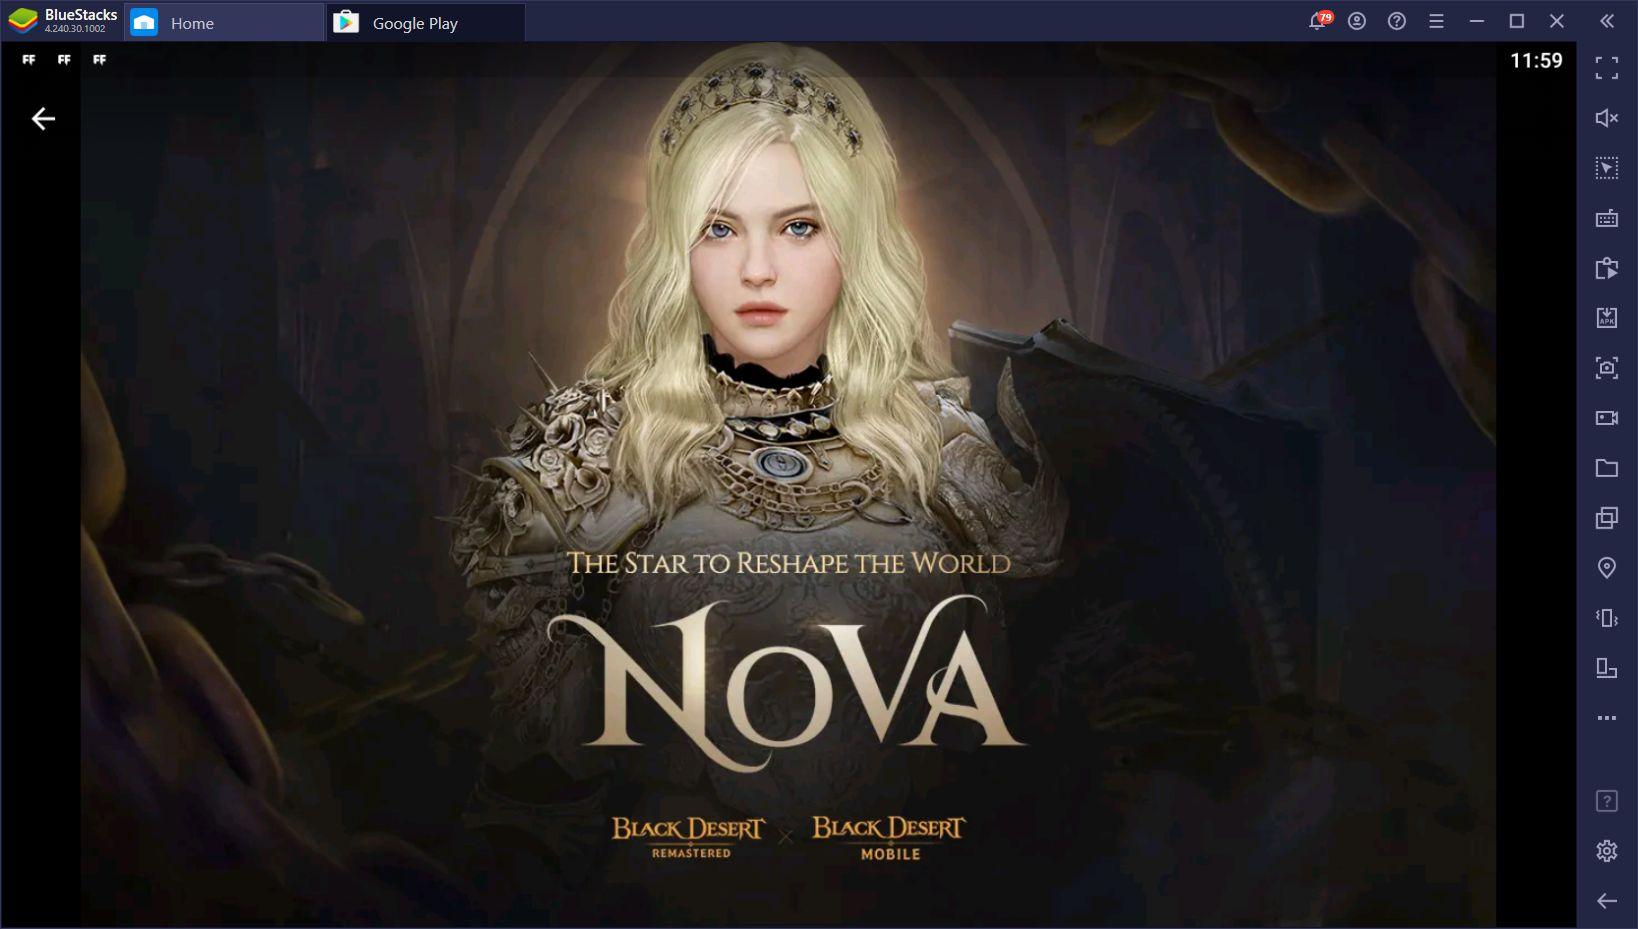 Black Desert Mobile – An Overview of the New 'Nova' Class